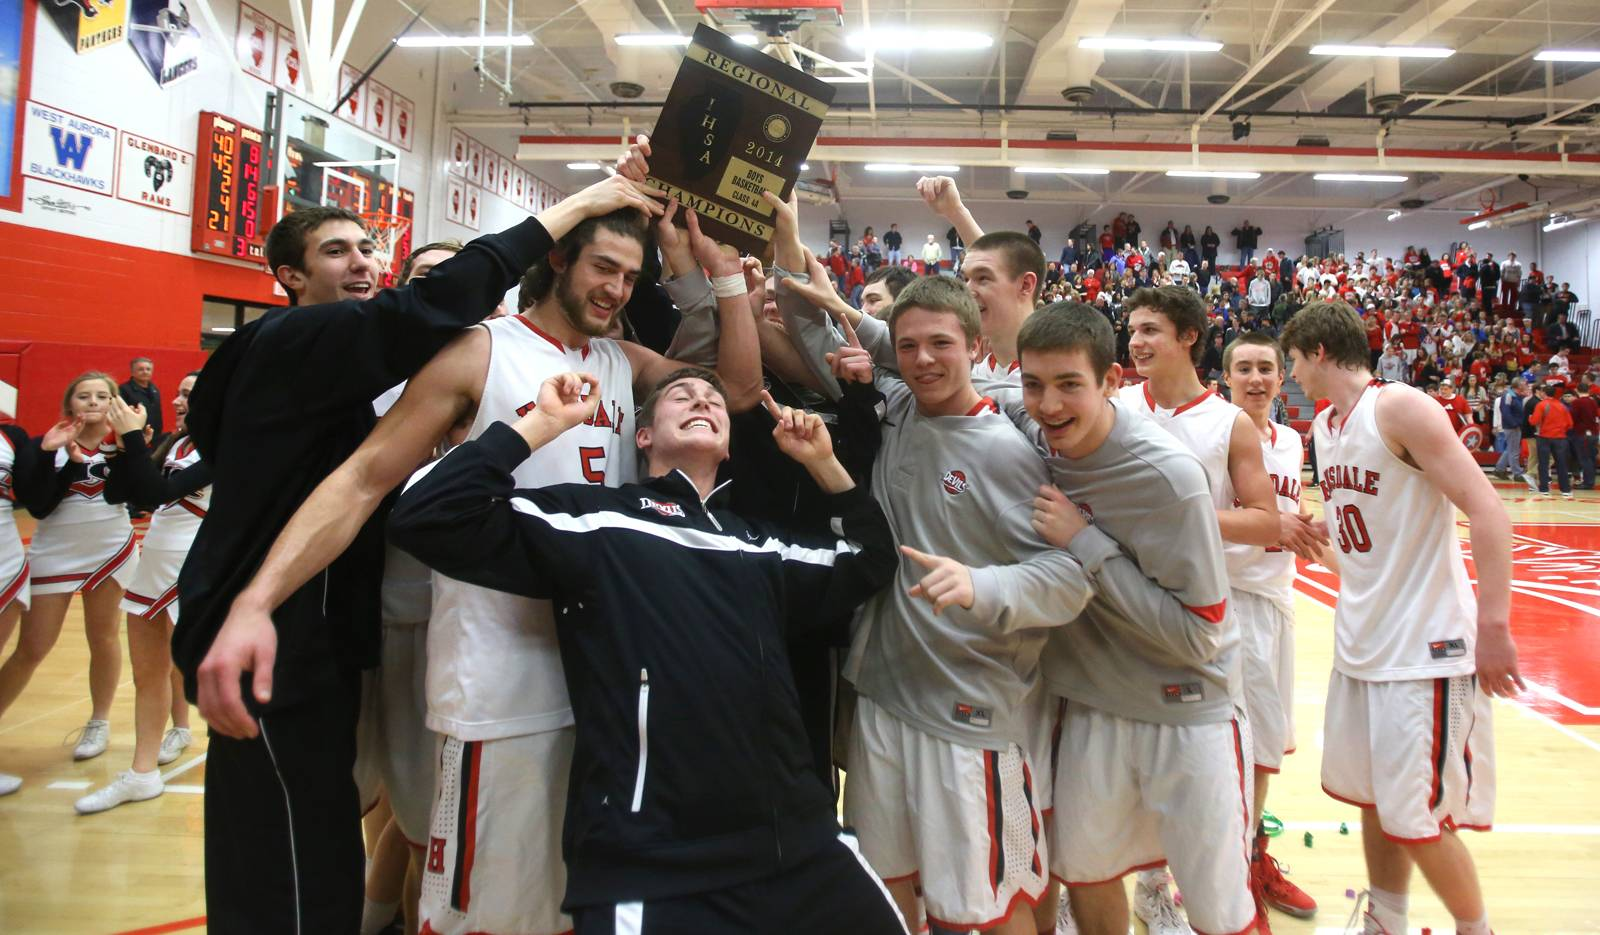 Images: Hinsdale Central vs. Naperville Central boys basketball